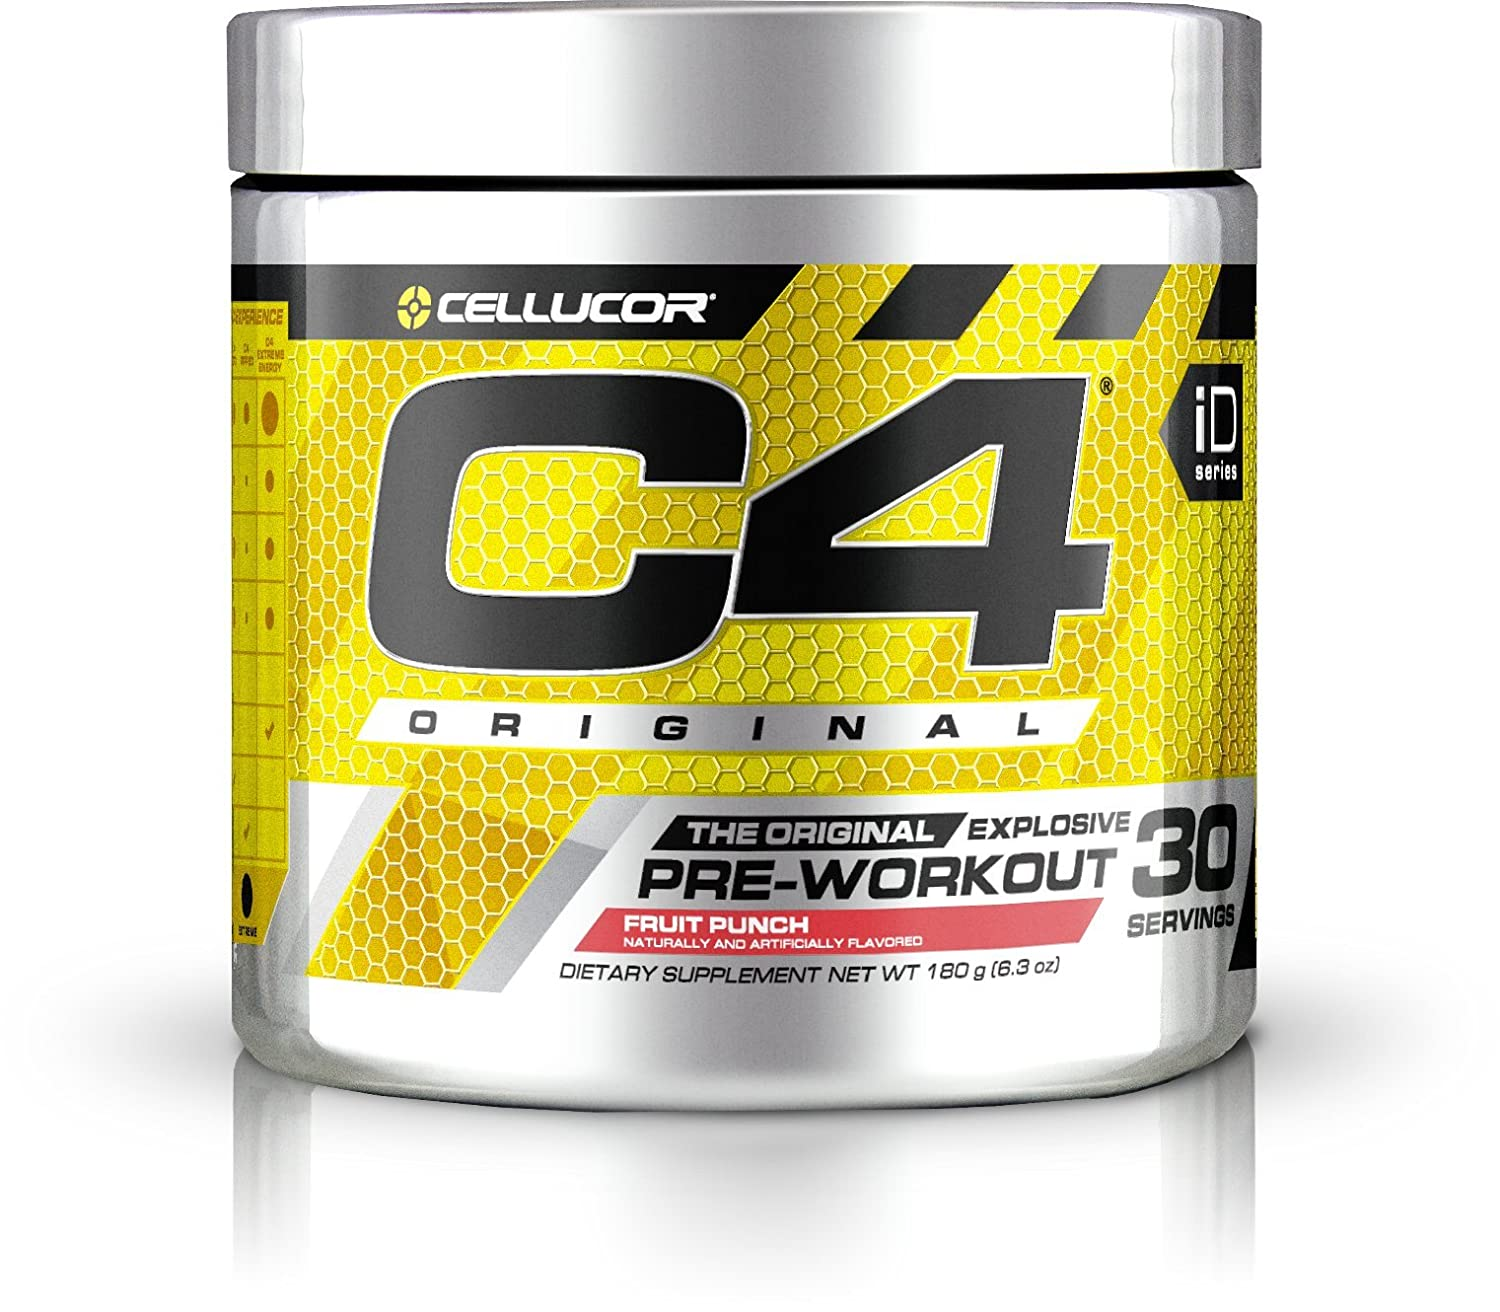 Cellucor C4 Original Explosive Pre-Workout Supplement, Fruit Punch, 6.3 Ounce